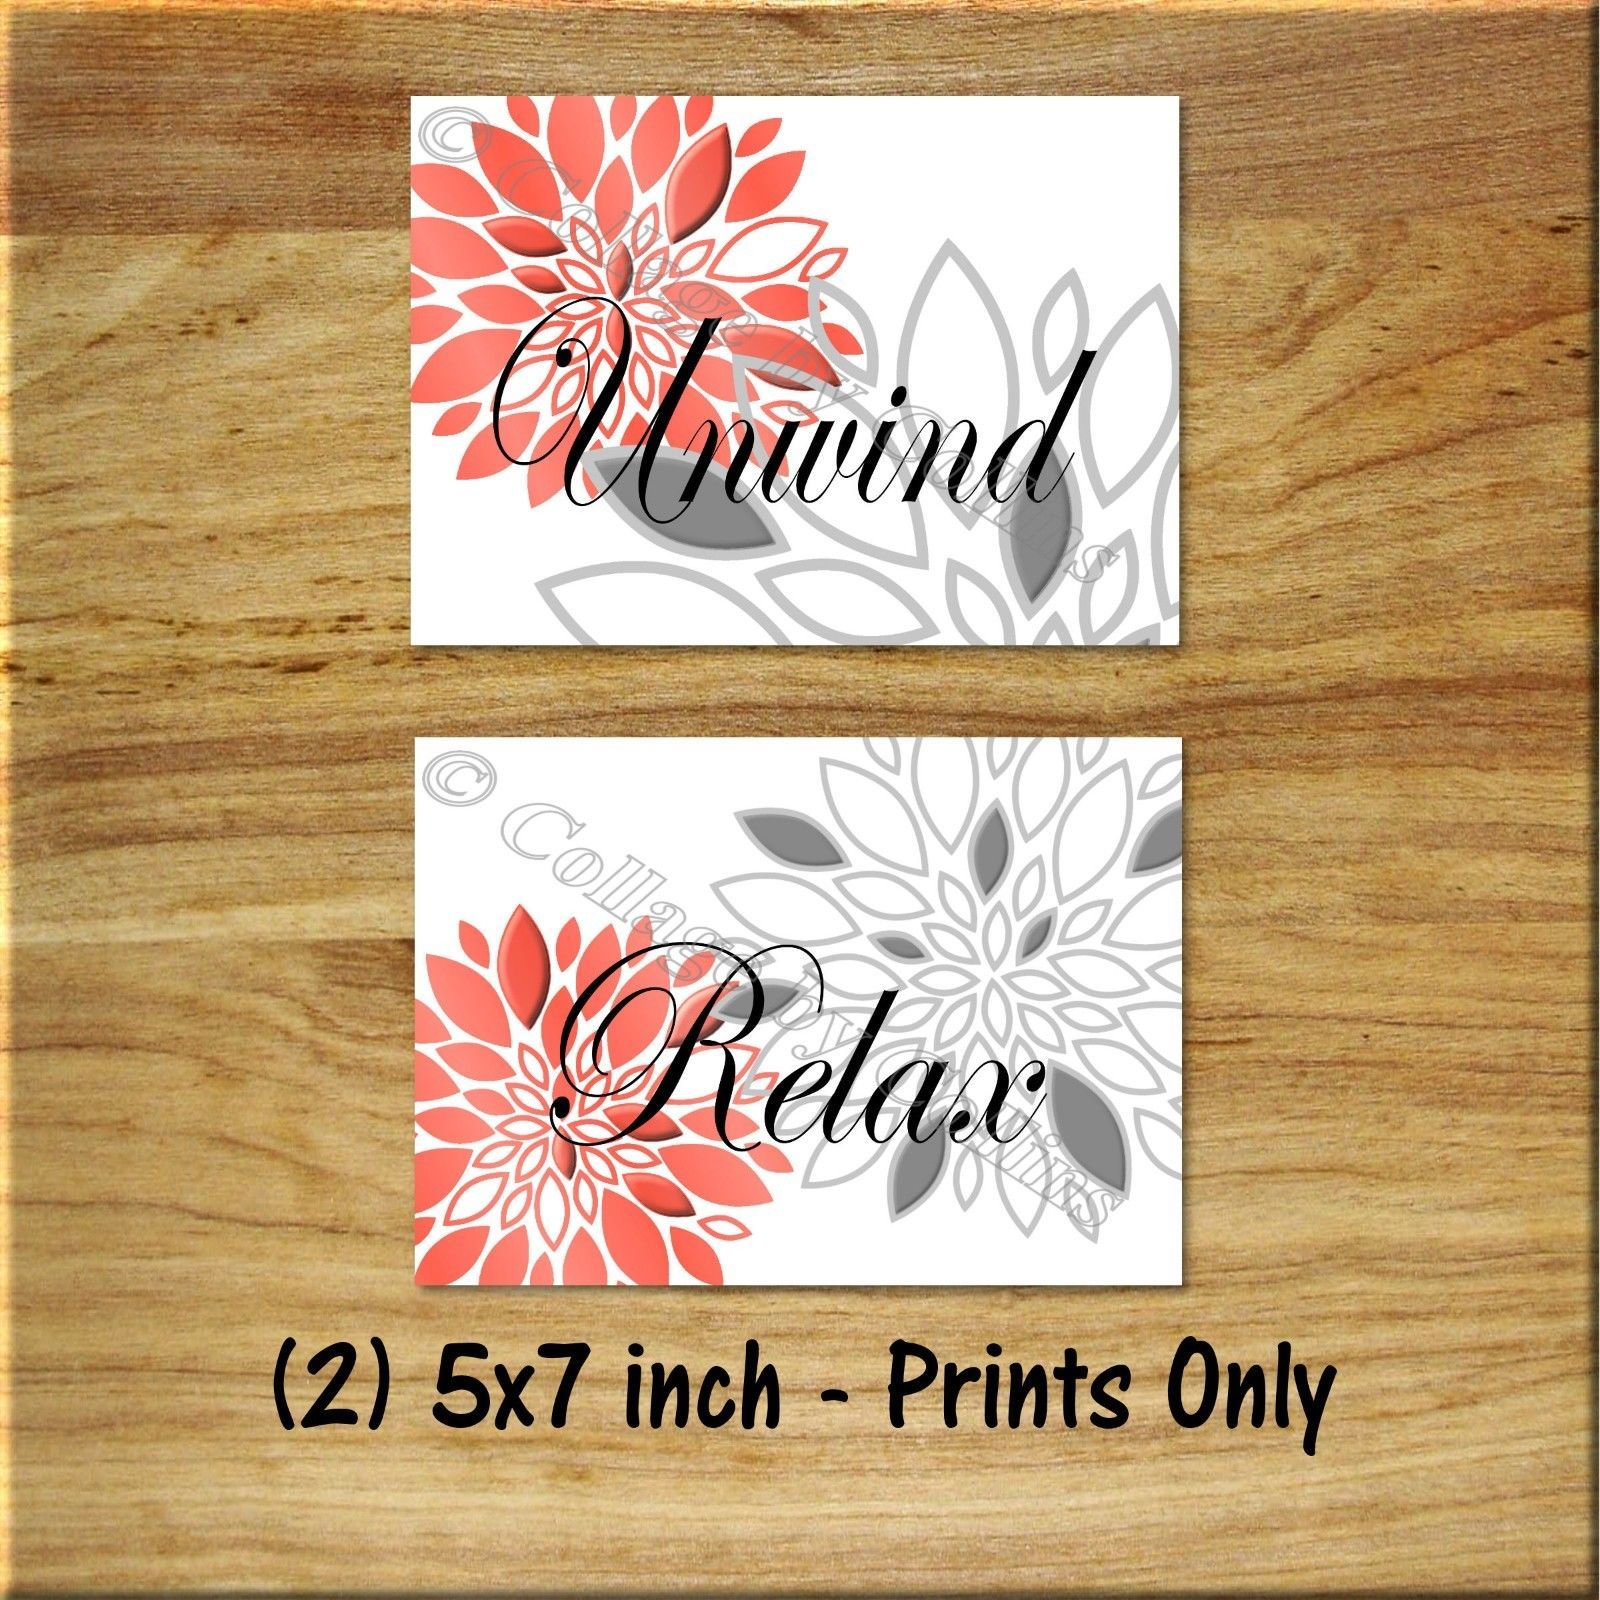 Primary image for Coral Gray Bathroom Wall Art Picture Prints Decor Floral Unwind Relax (2) 5x7""